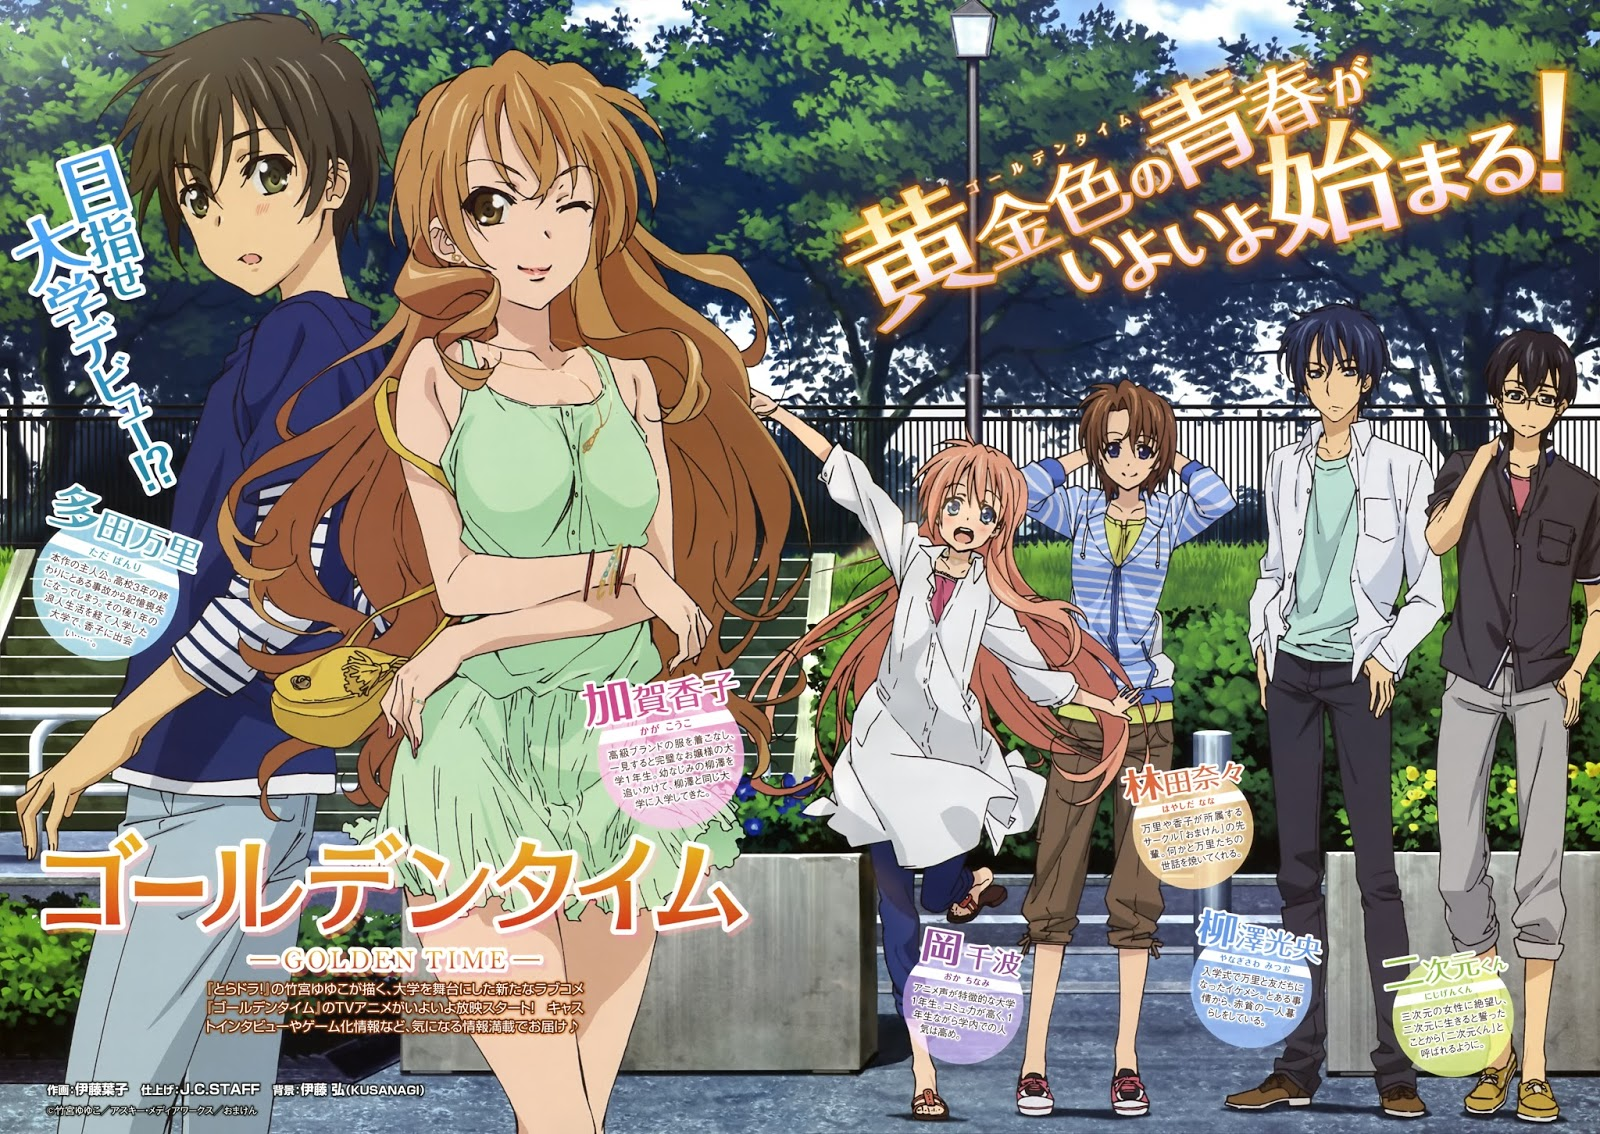 If you havent go look it up and continuing the success of the romance genre in the anime industry golden time